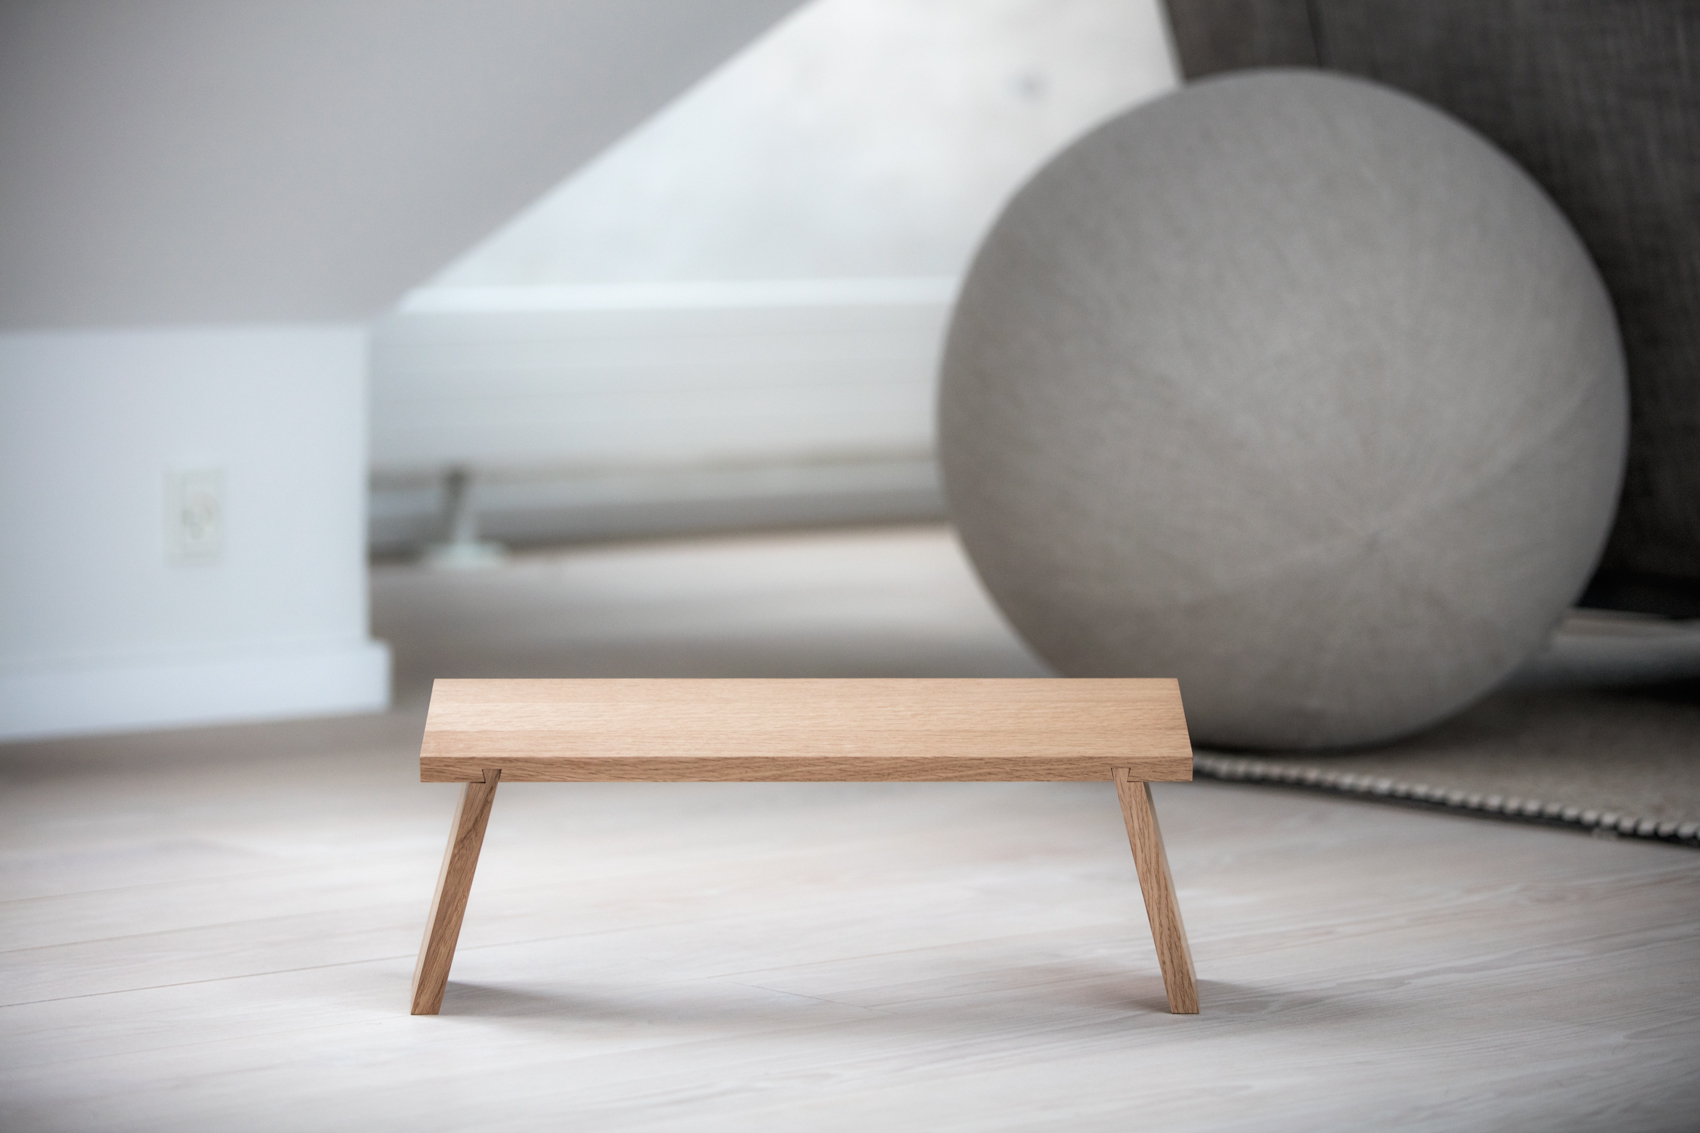 Sedeo Meditation Stool